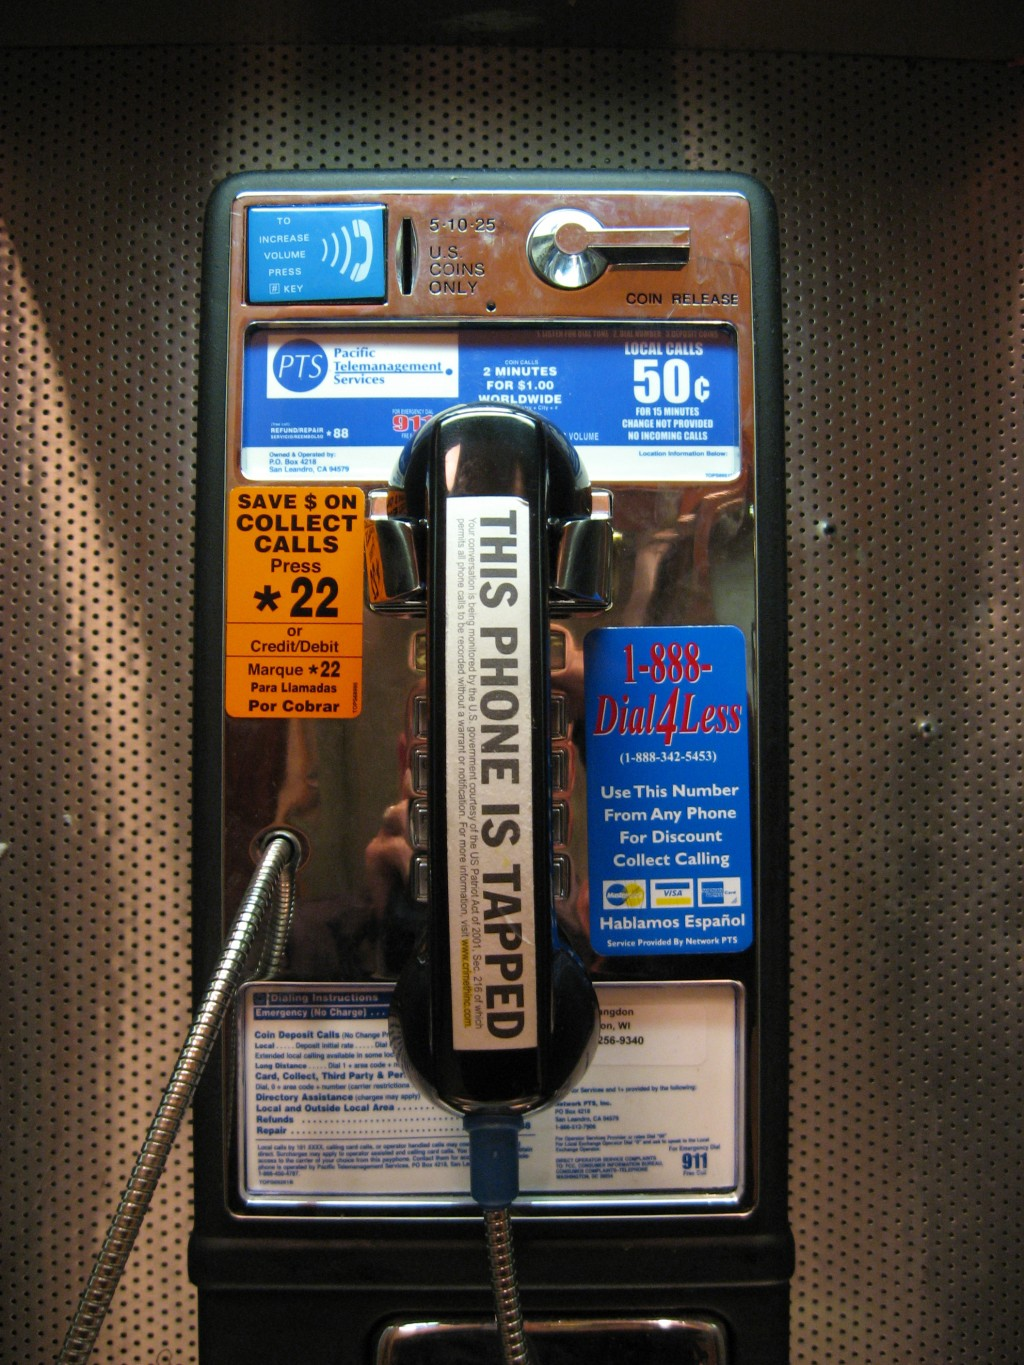 019 This Phone Is Tapped Good Topics For Researchs In Criminal Justice Formidable Research Papers Large